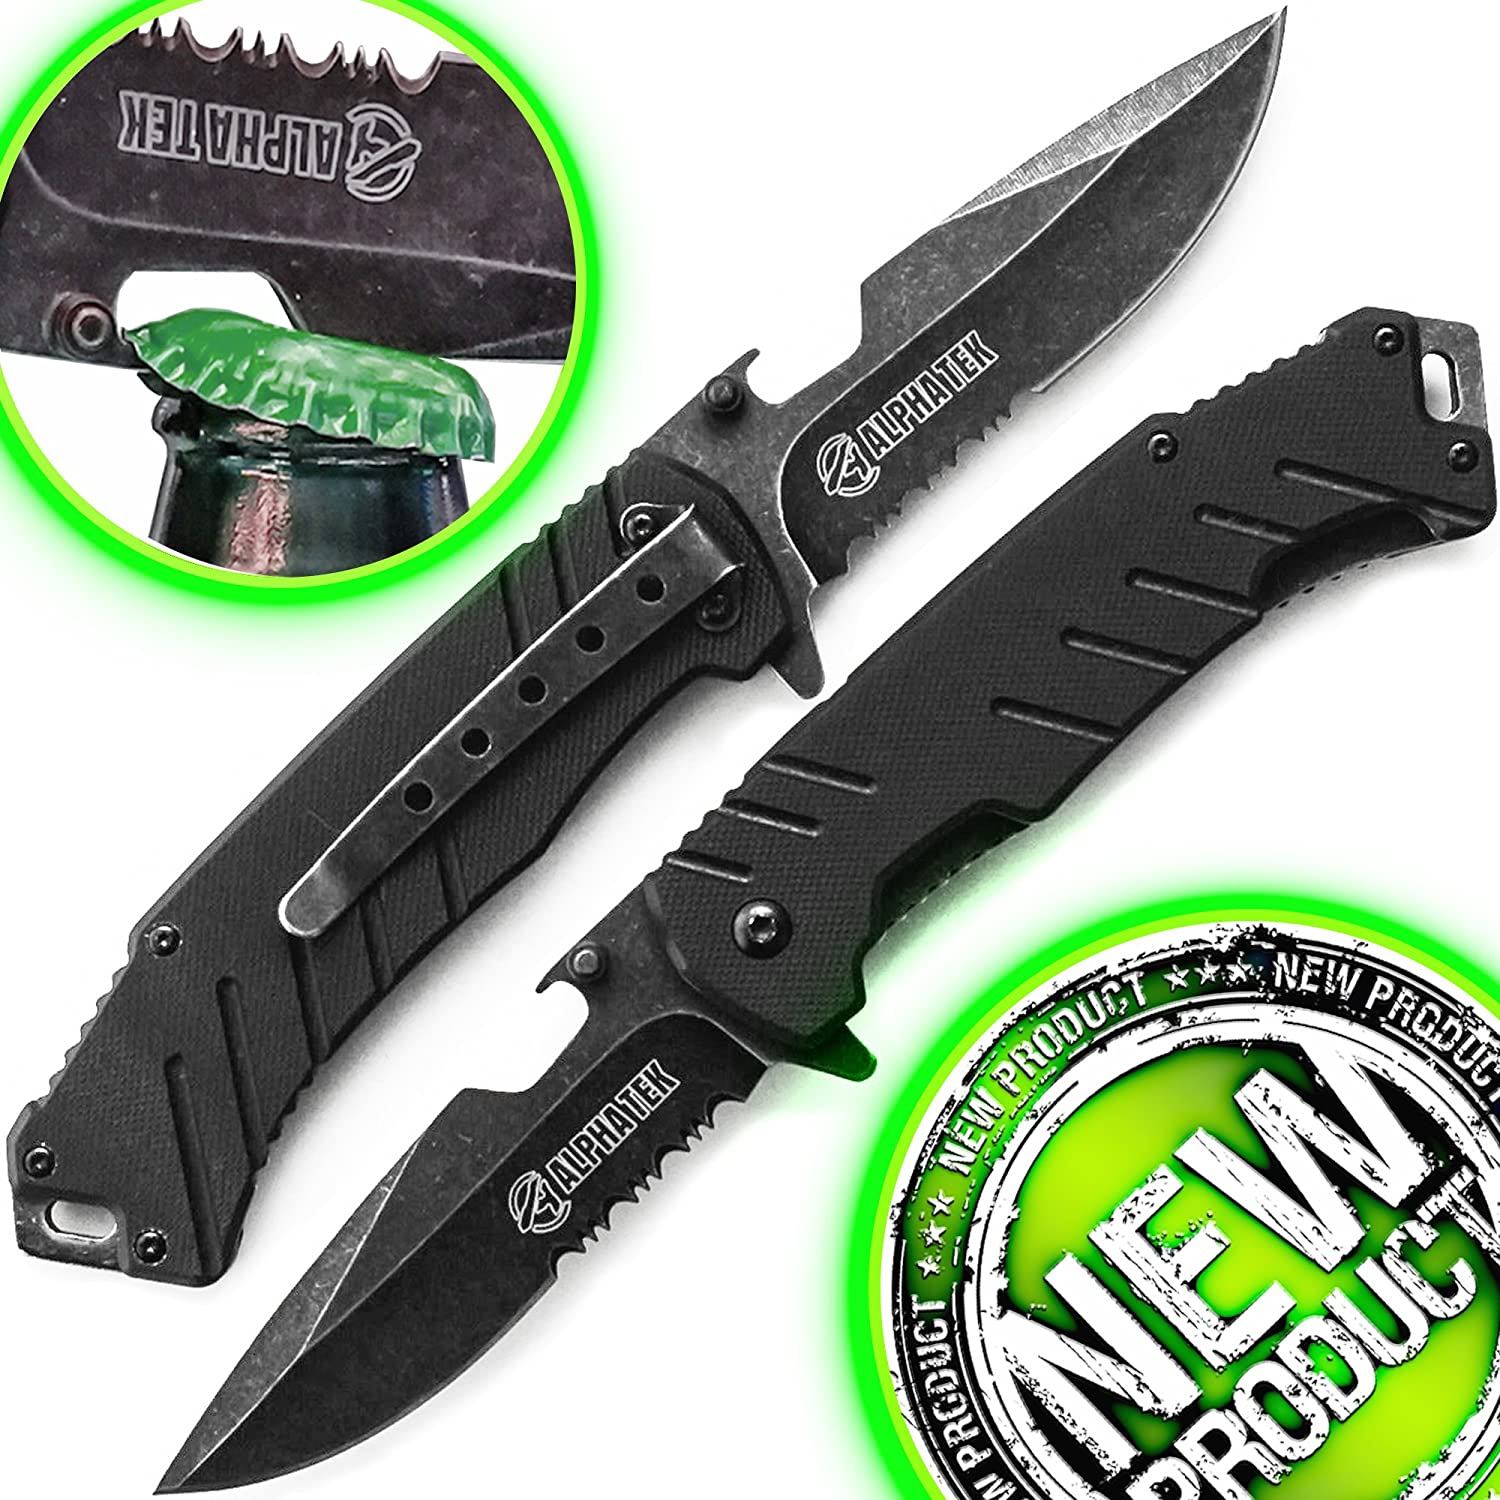 Spring Assisted Knife: Black Tactical Knife With Lightning Quick Deployment - BOTTLE OPENER - Black 440C SS Blade - G-10 Handle - Pocket Clip.